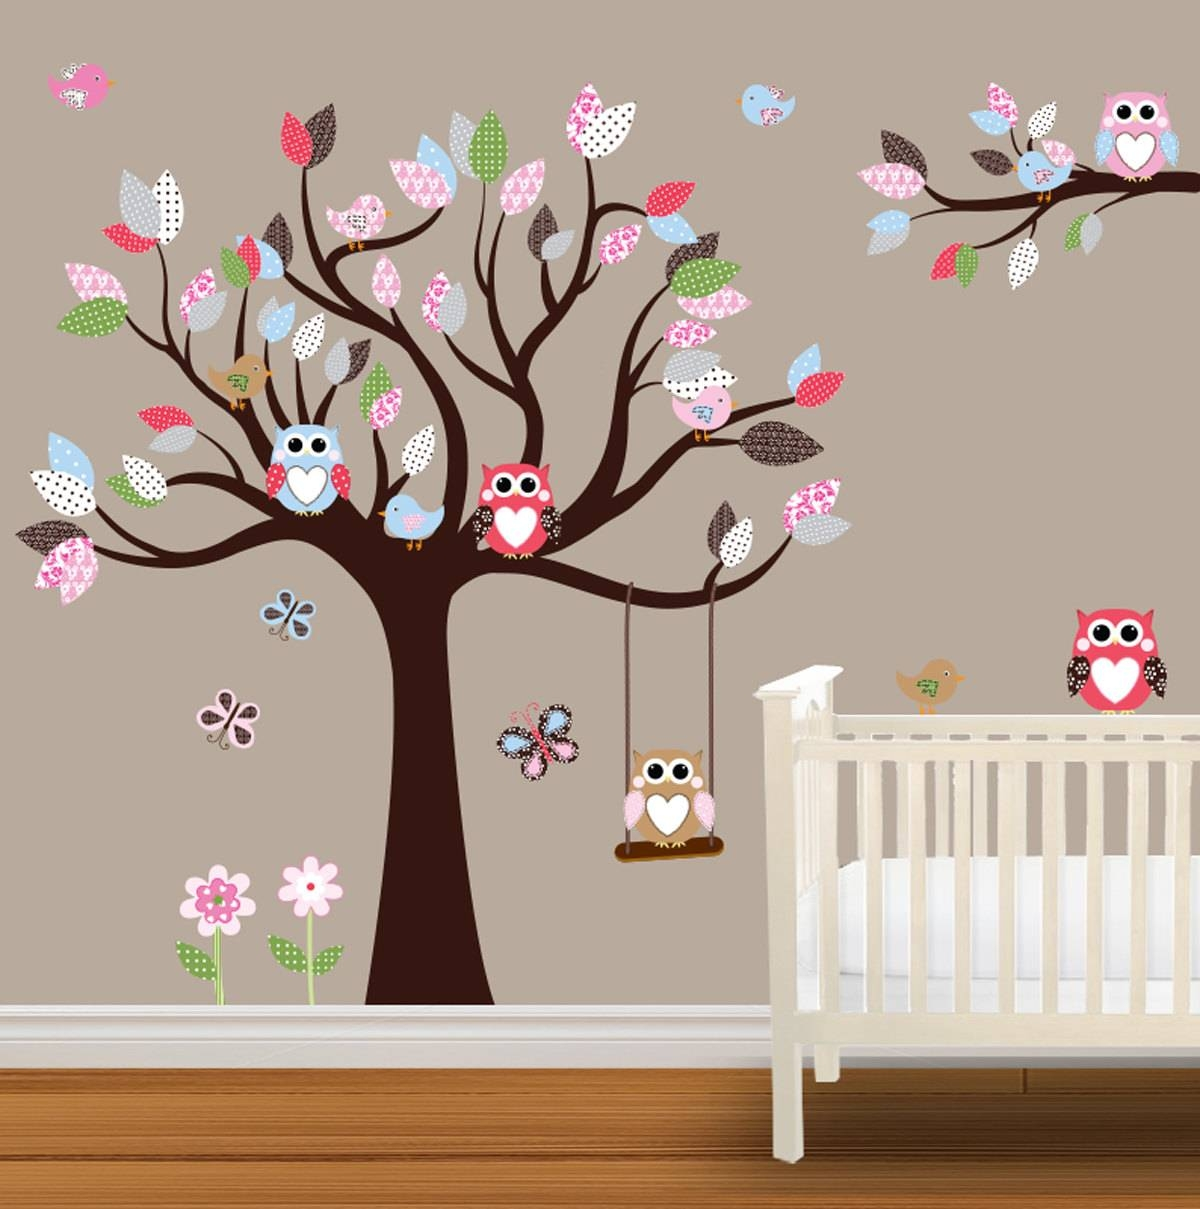 Wall Art Stickers Baby Room – Wall Decor Stickers: Simply For Most Current Wall Art Stickers For Childrens Rooms (View 20 of 20)